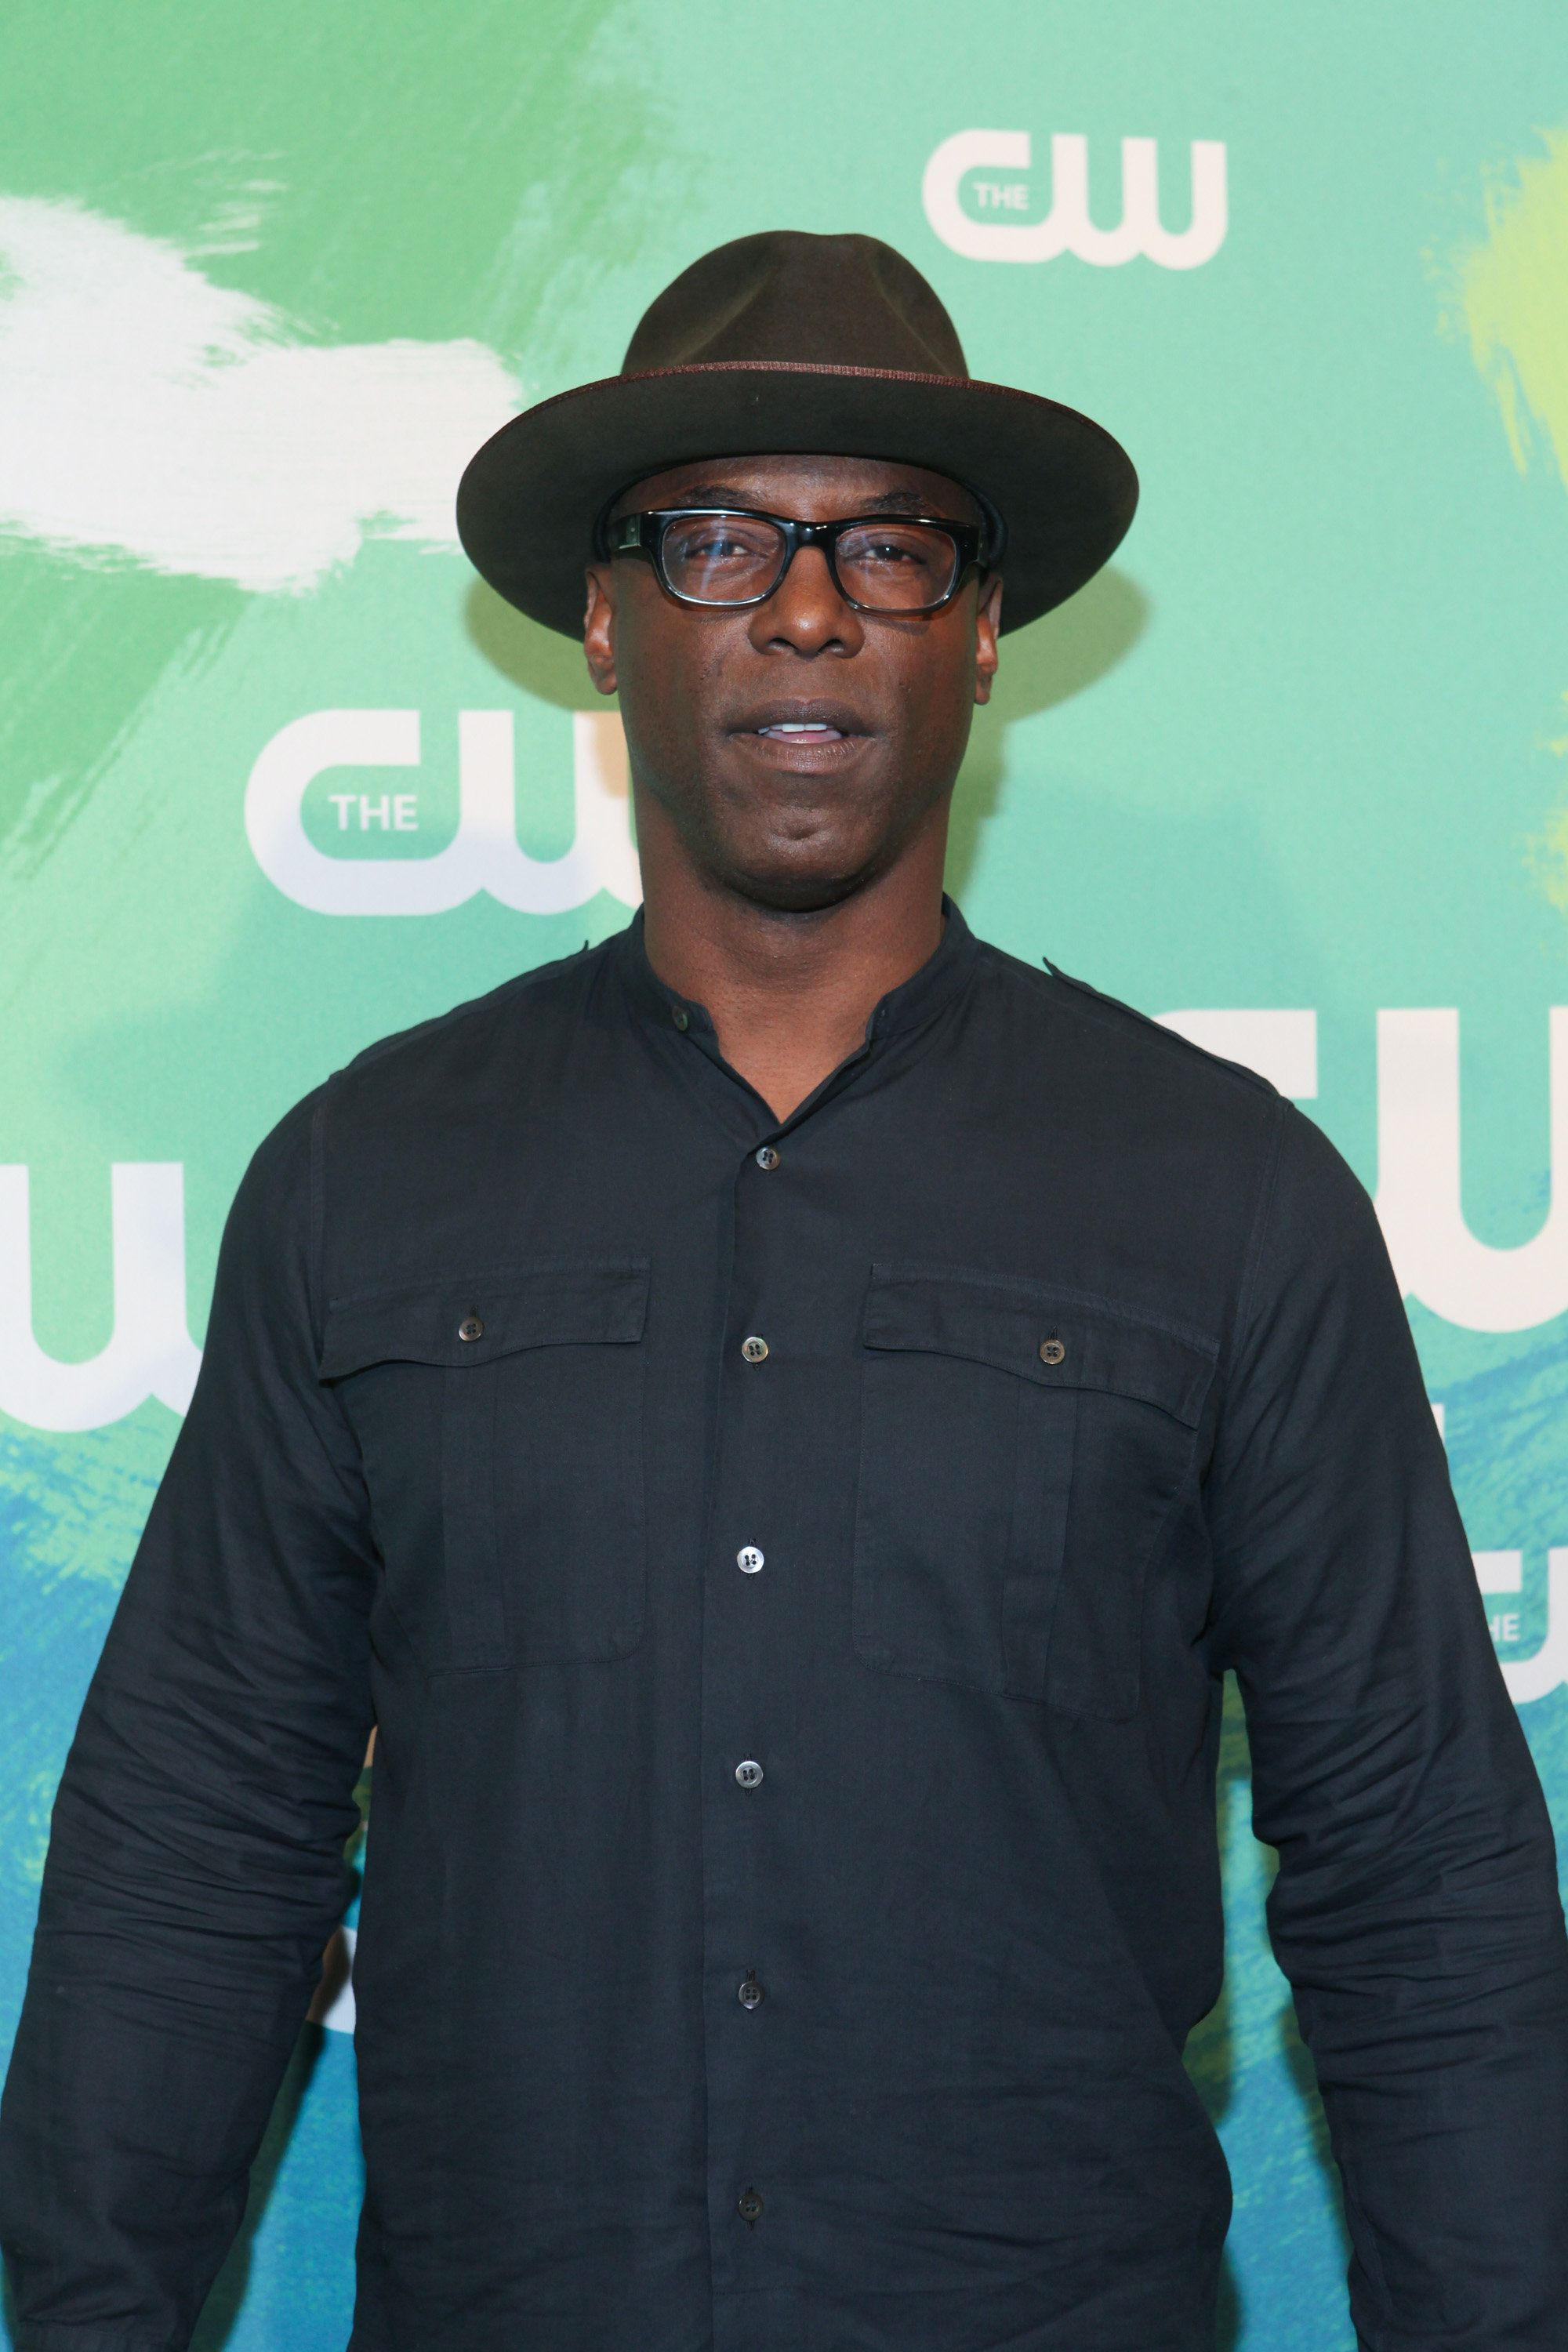 NEW YORK, NY - MAY 19:  Isaiah Washington attends The CW Network's 2016 New York Upfront at The London Hotel on May 19, 2016 in New York City.  (Photo by Steve Zak Photography/FilmMagic)